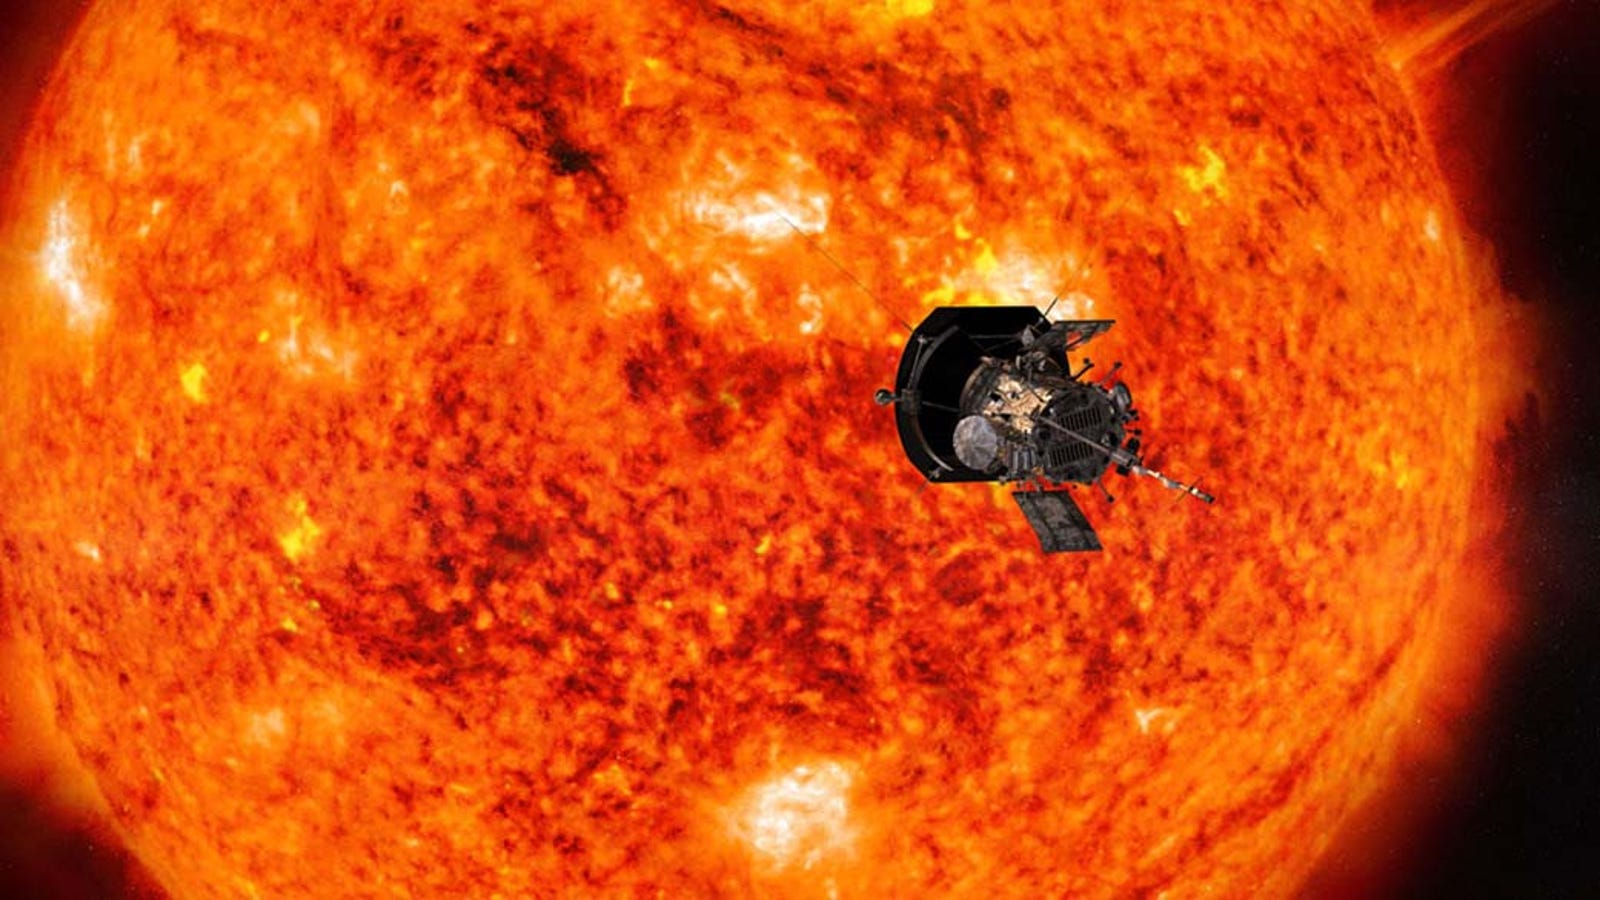 How Will NASA Get this Probe to the Sun Without It Melting?